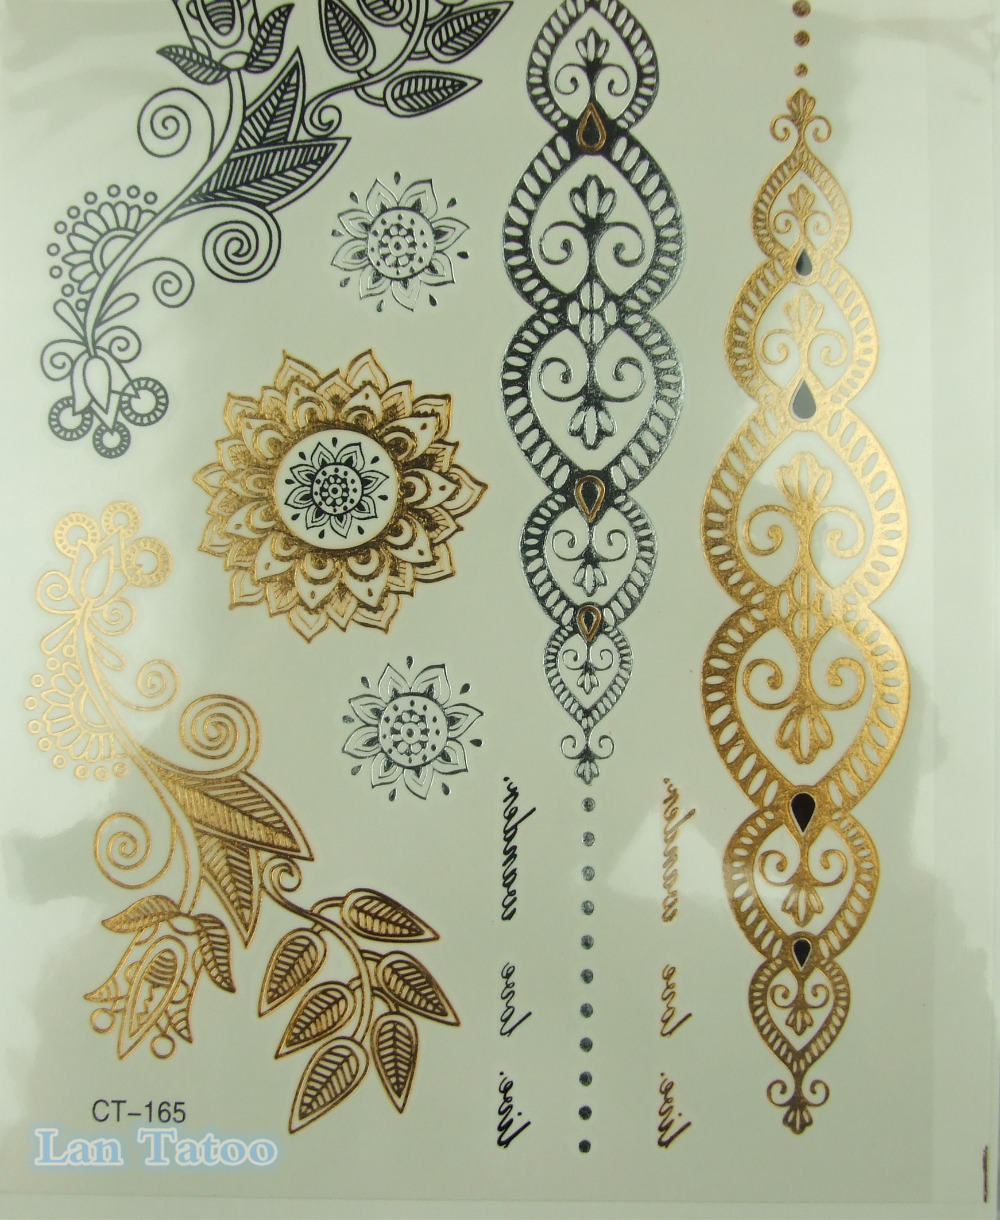 Henna Tattoo Prices : Ct leaf jewelry sticker tattoo metallic golden flash